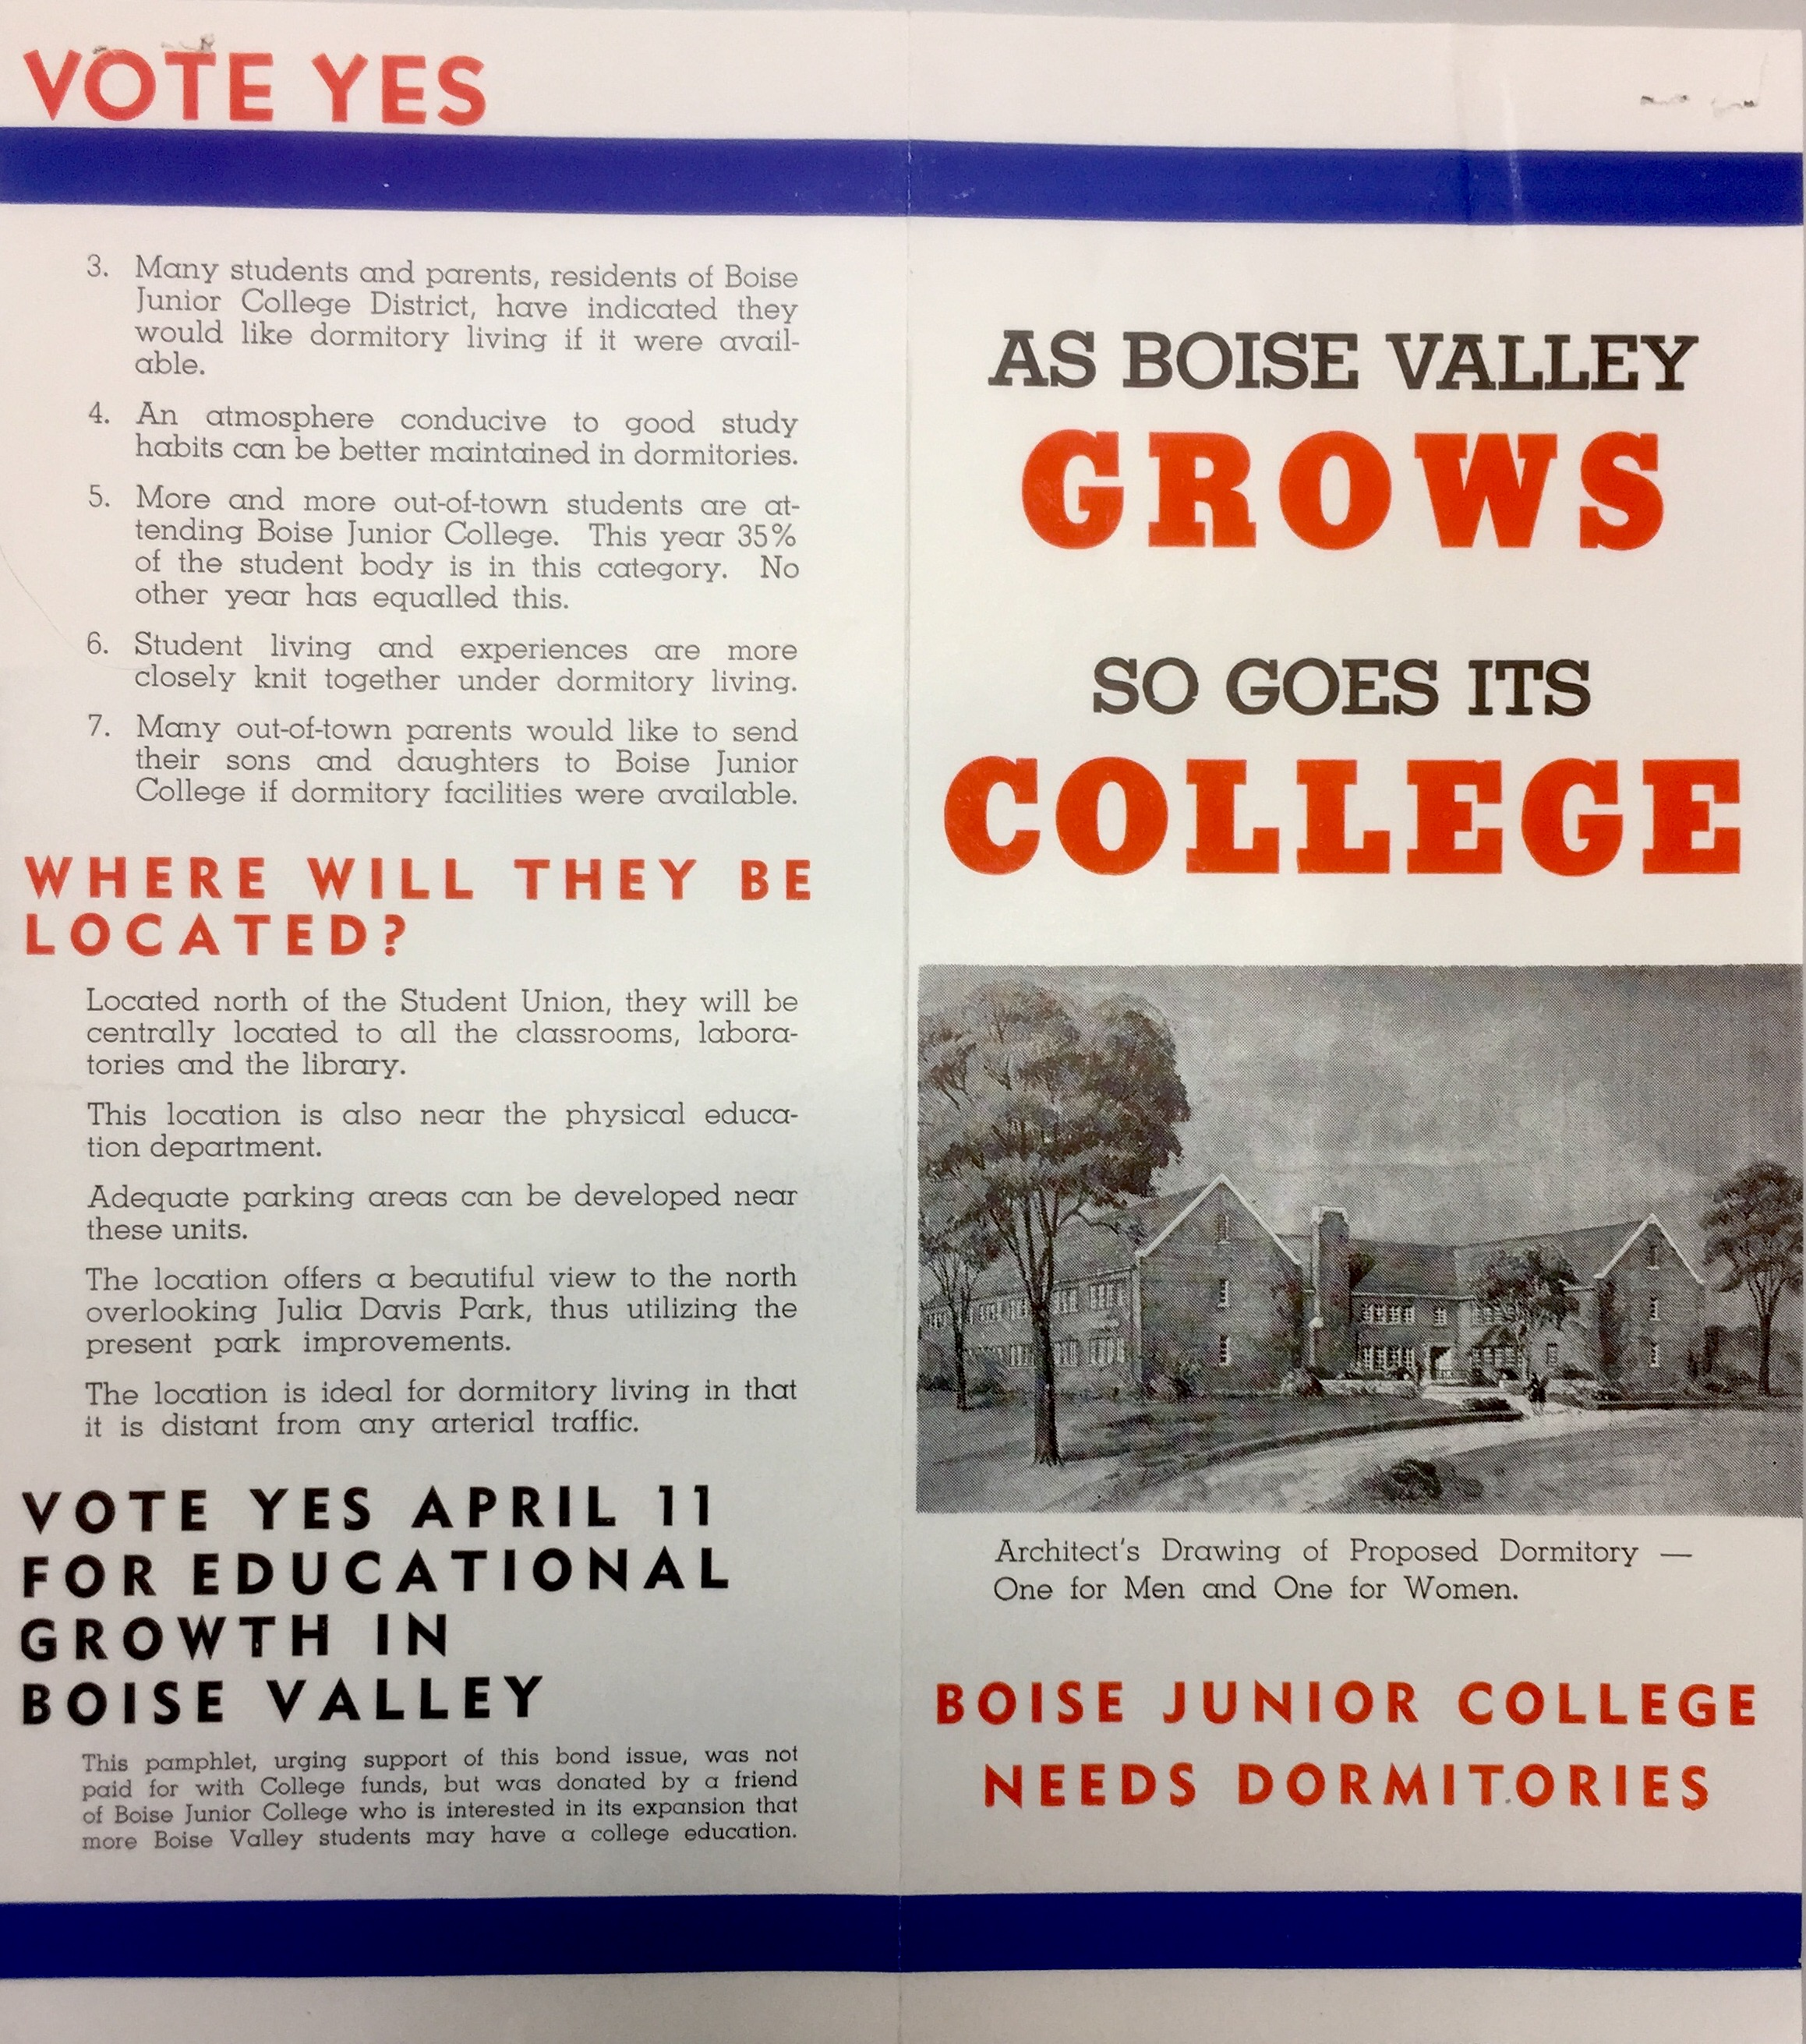 New Dormitory Proposal (1950) 